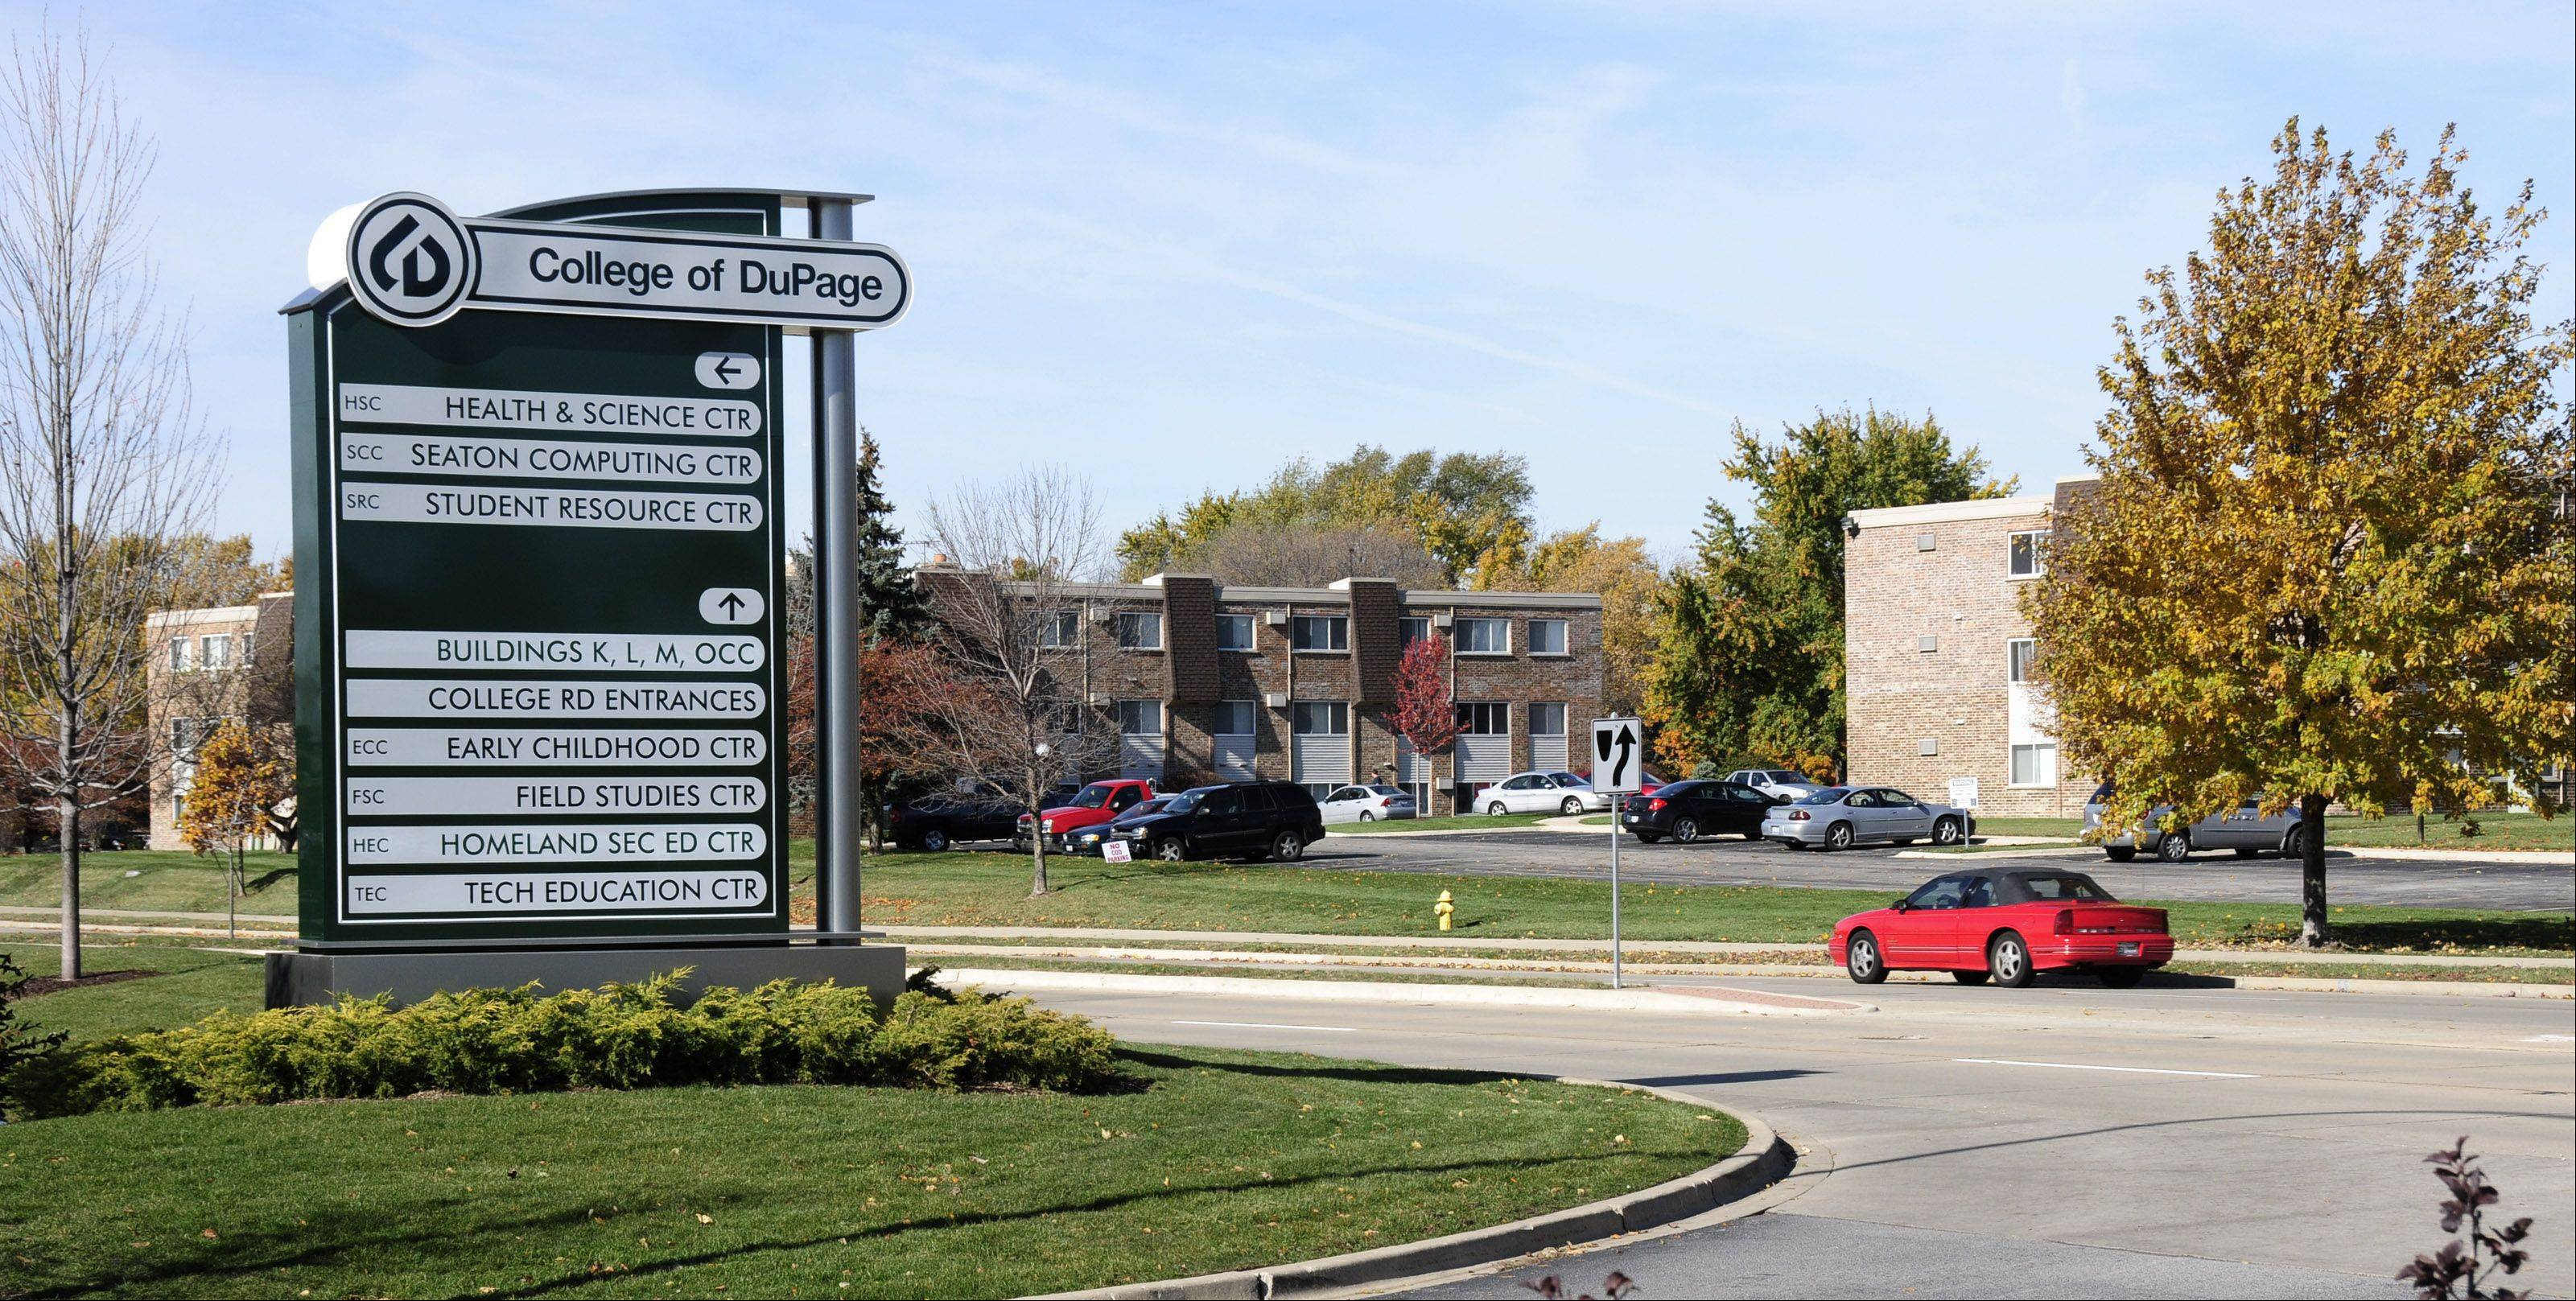 Officials from the College of DuPage and village of Glen Ellyn are going back to the negotiating table after a judge issued a ruling Tuesday that encouraged both sides to work together.